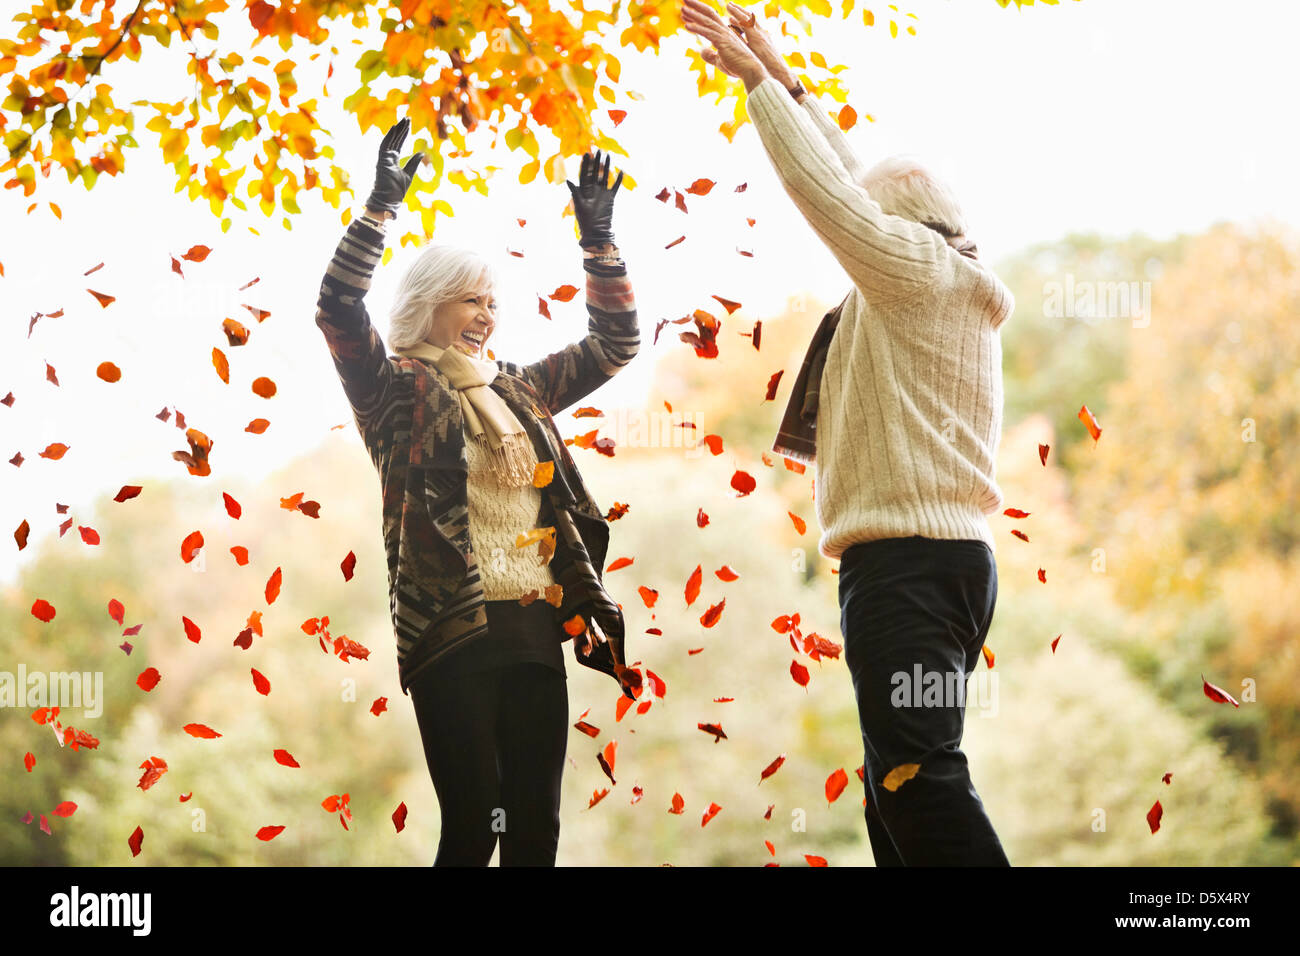 Older couple playing in autumn leaves - Stock Image